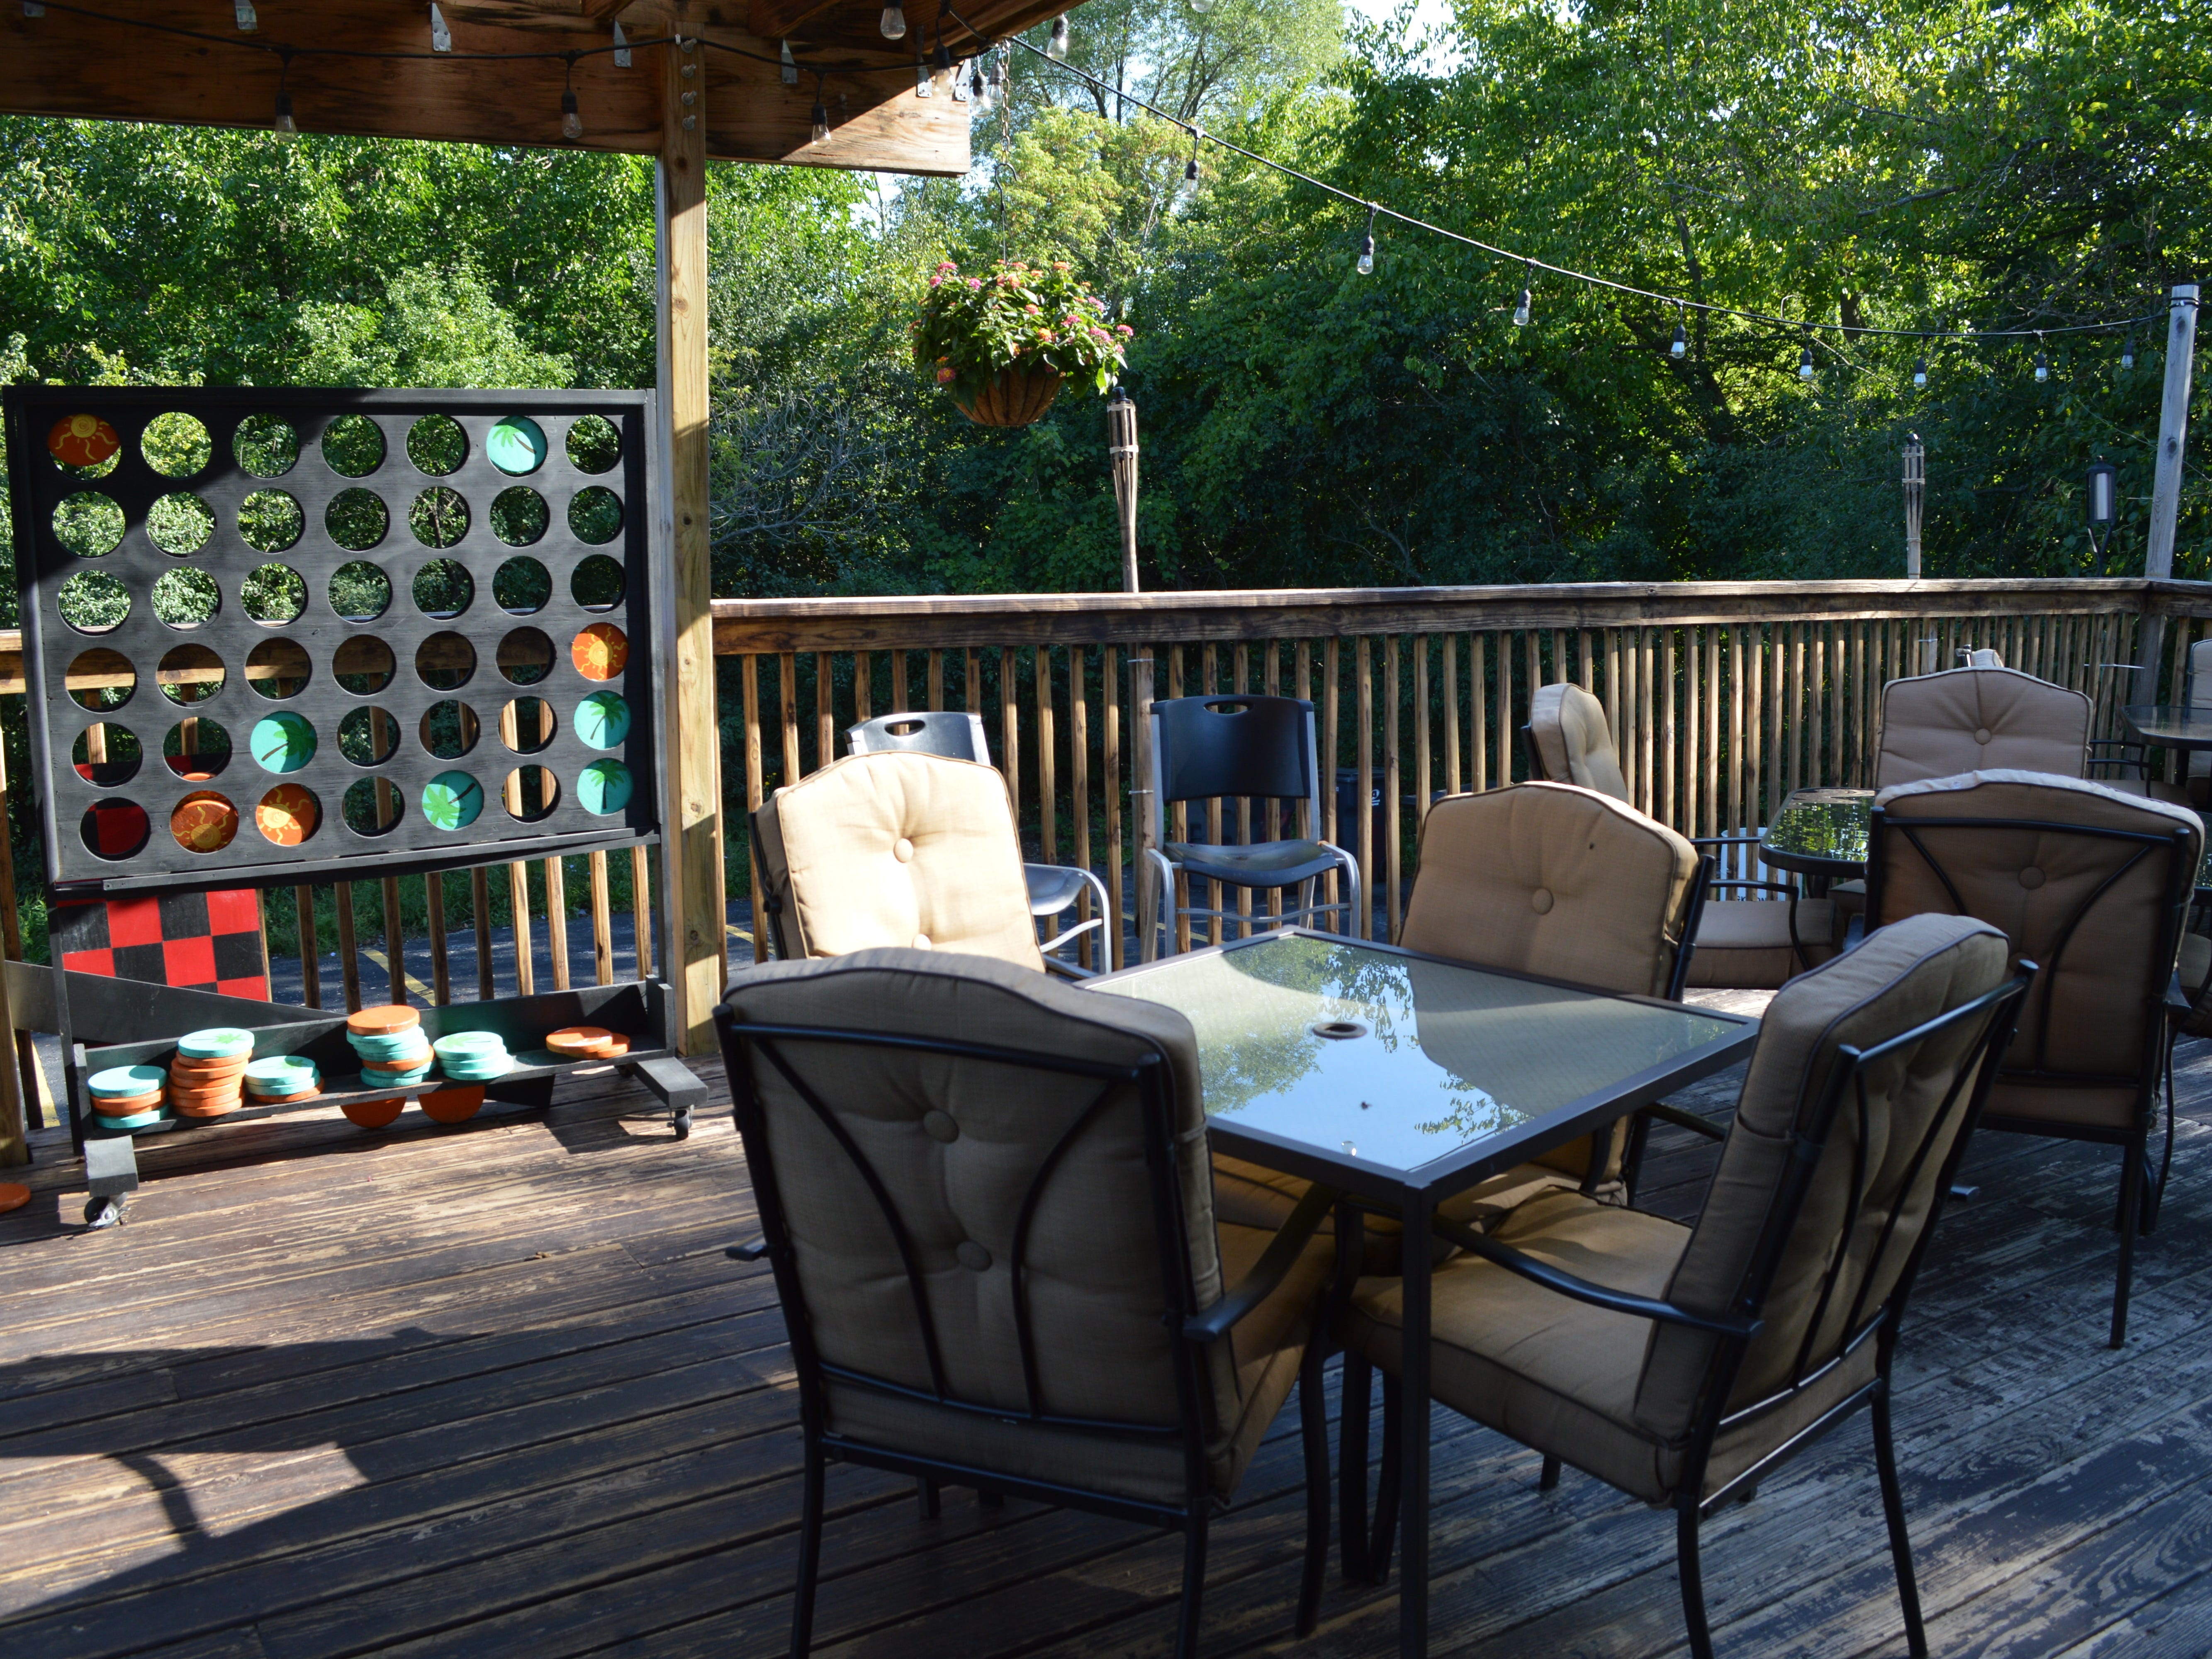 When Kimberly Mathy took over the establishment, she redid the deck.